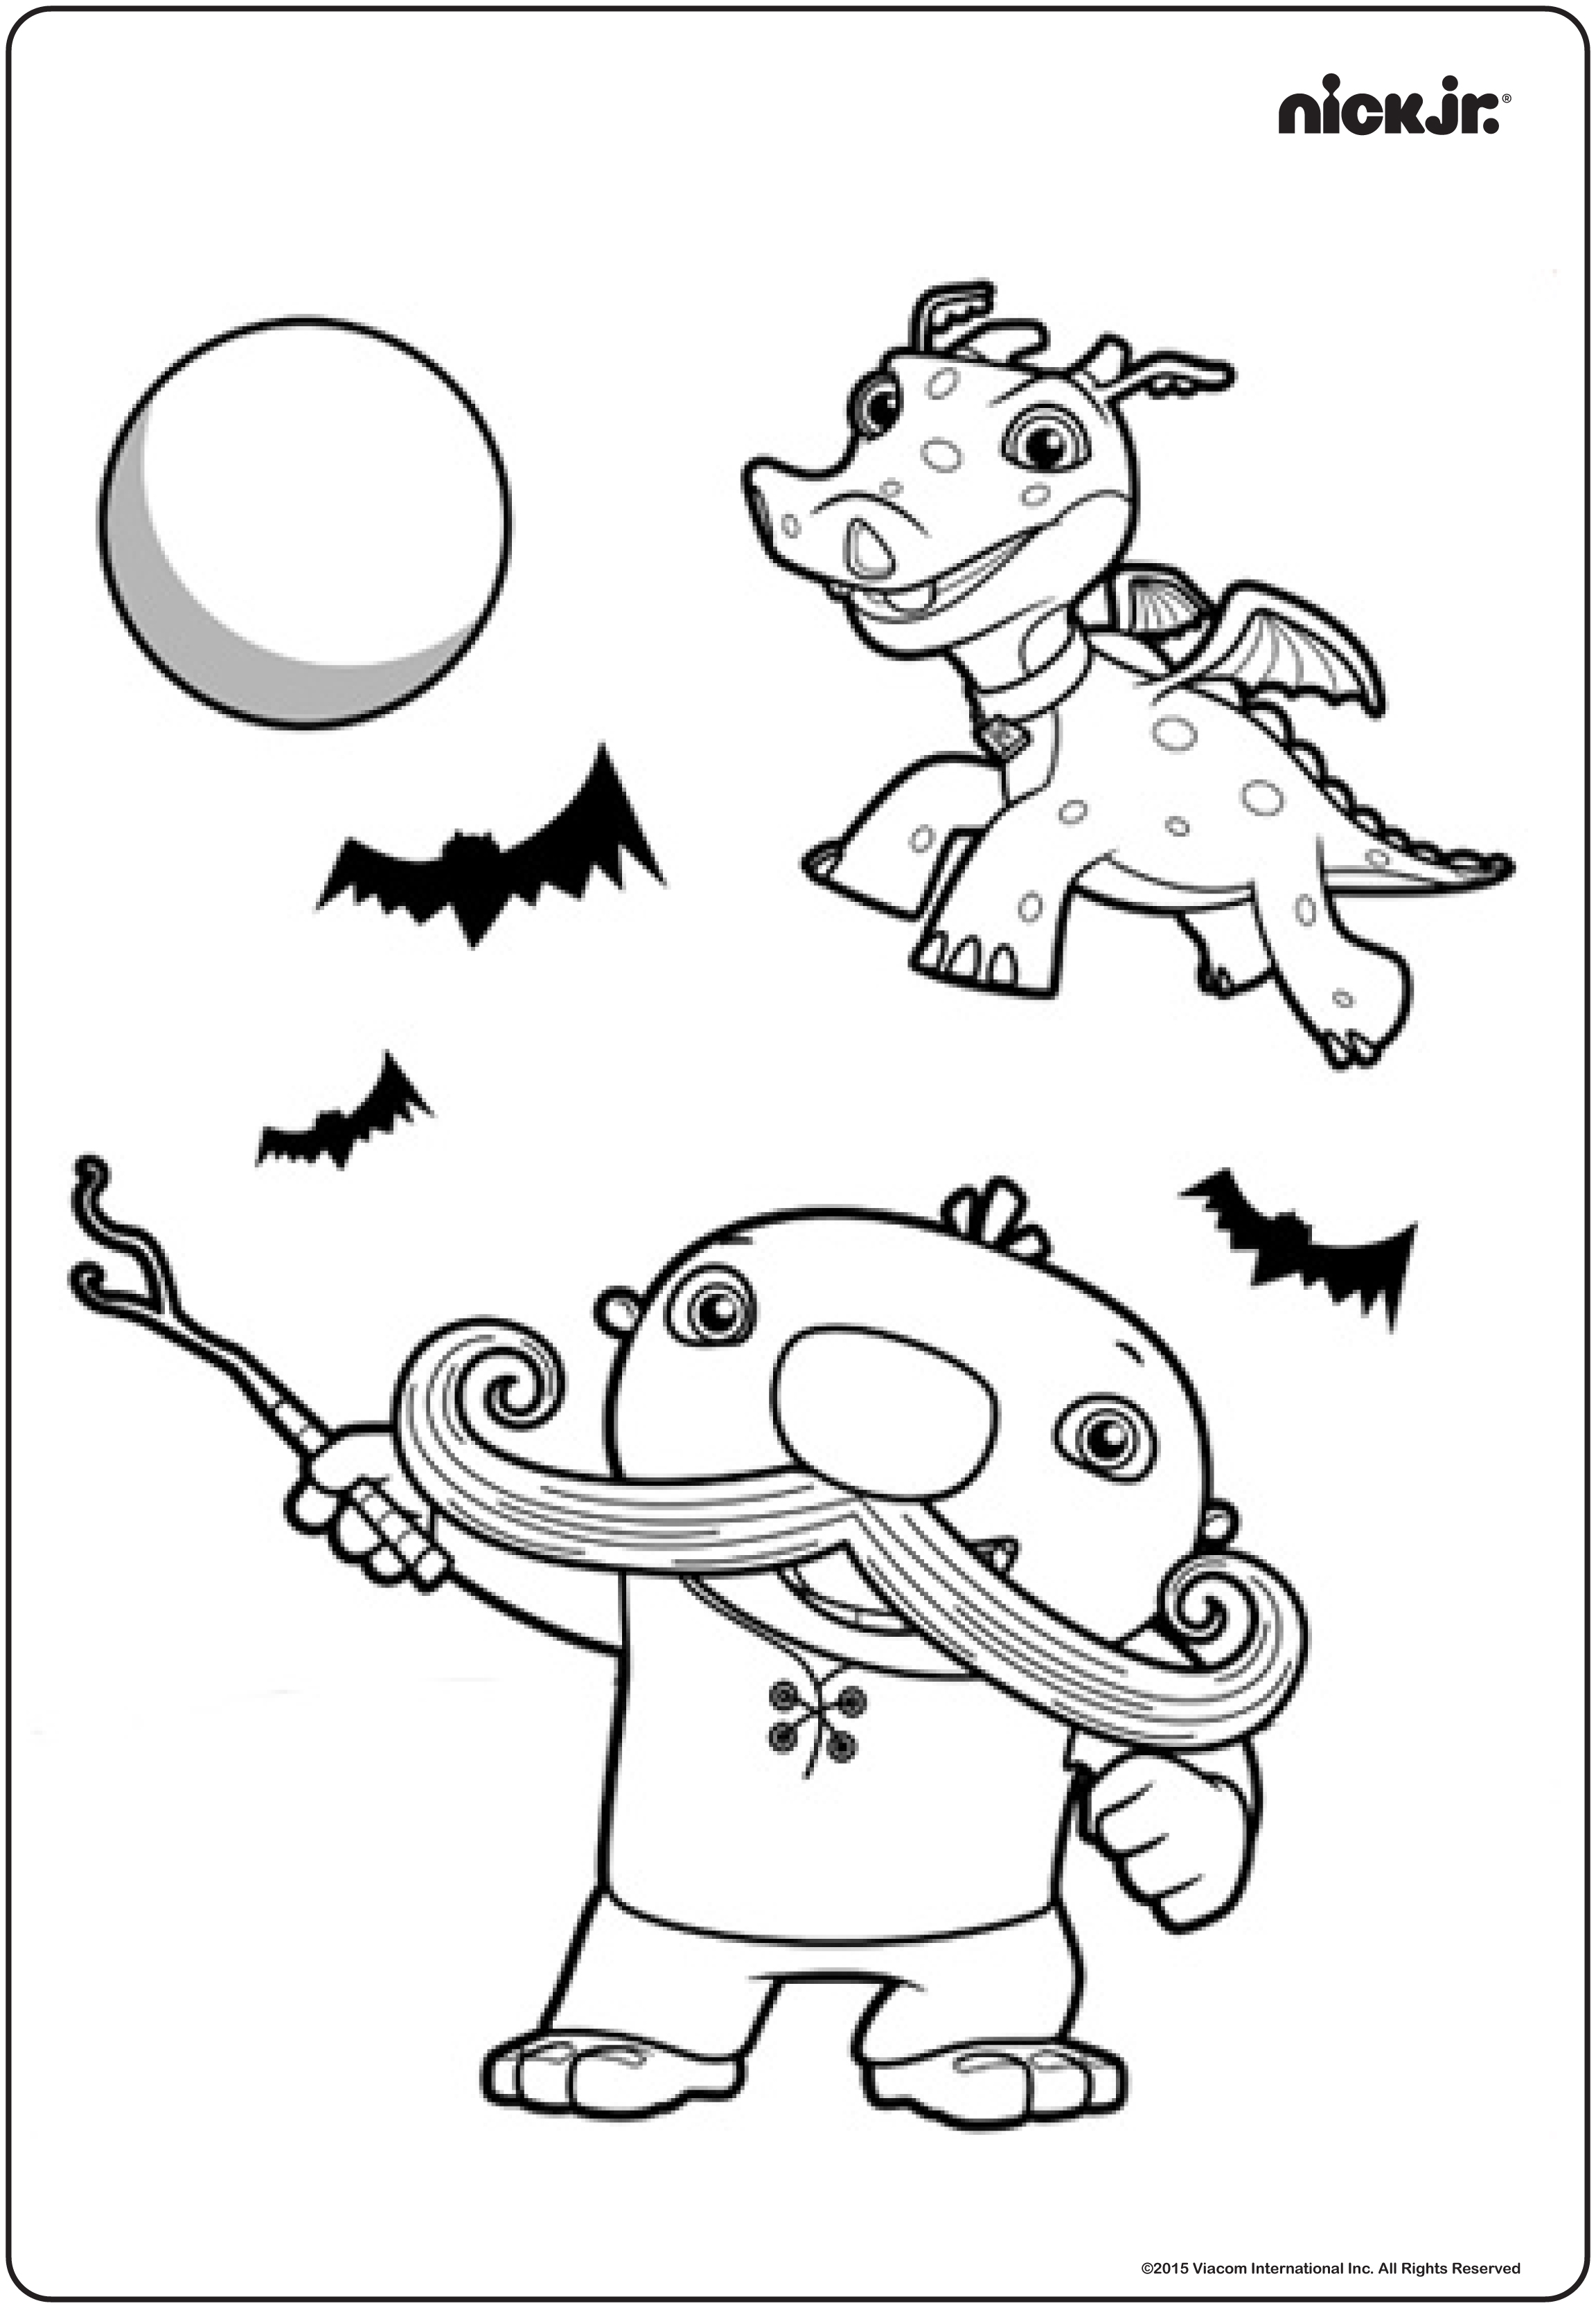 coloring pages nick jr - photo#36